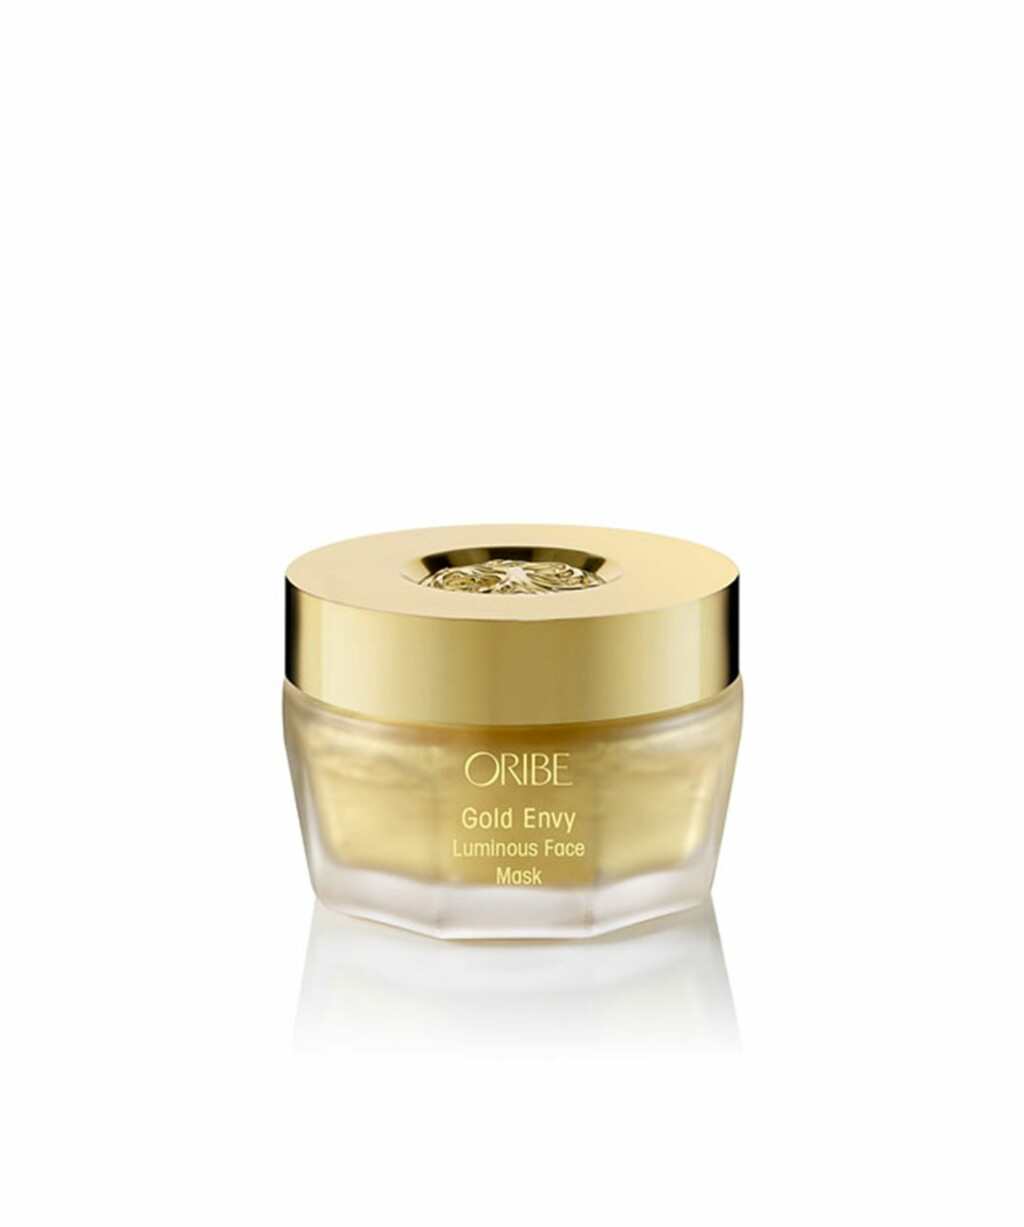 Ansiktsmaske (kr 950, Oribe, Gold Envy Luminous Face Mask).